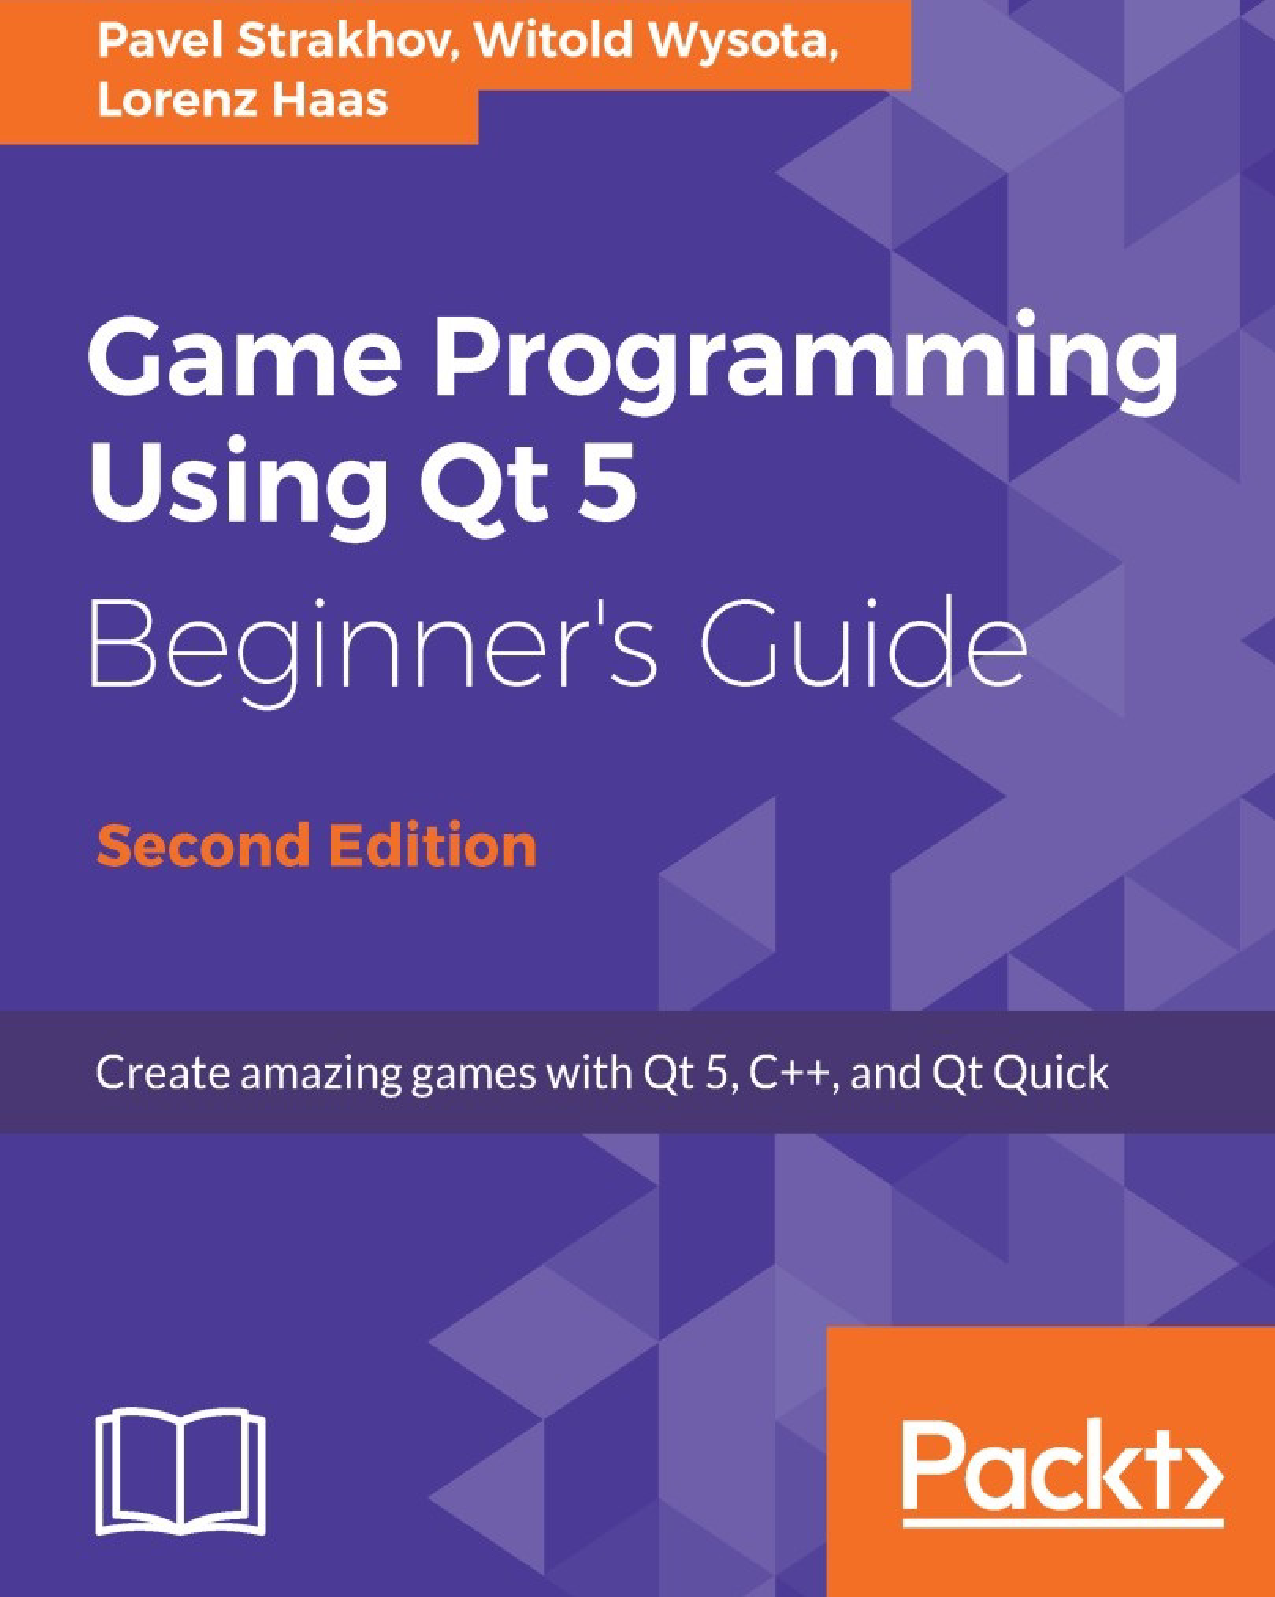 Game Programming Using Qt 5 Beginner's Guide Second Edition Lorenz Haas